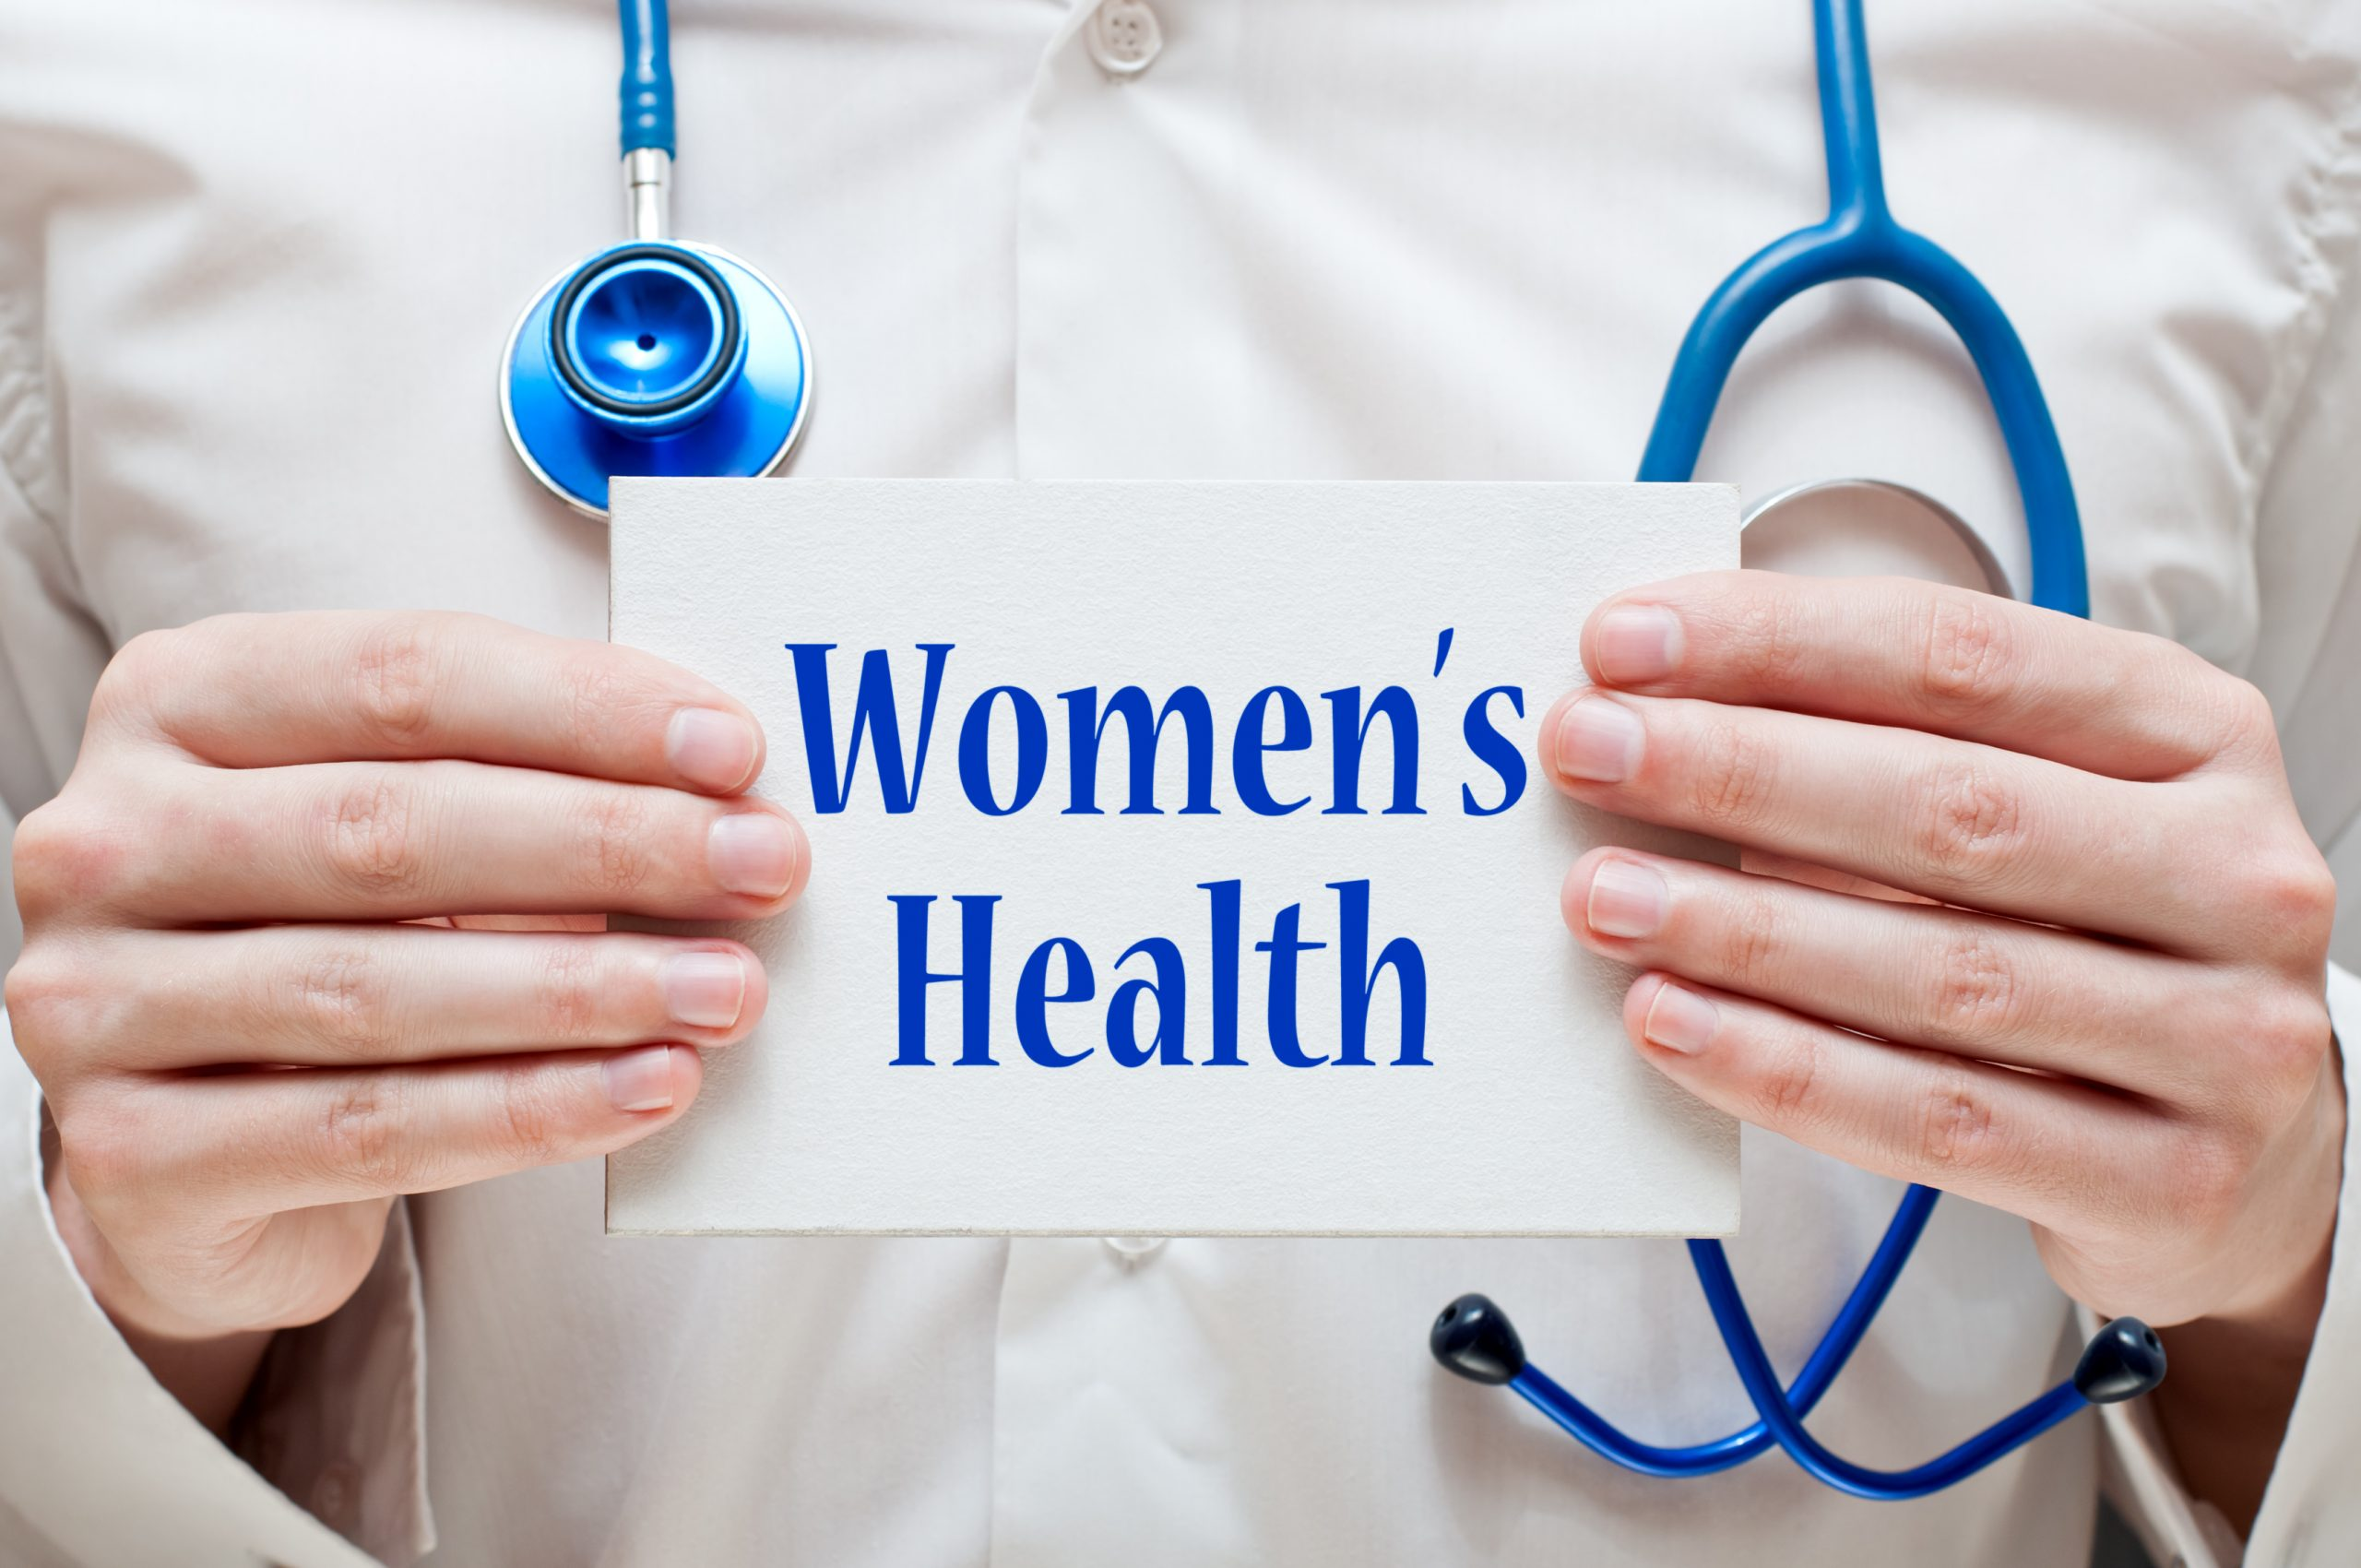 Why Doctors Need to Talk more about Women's Health